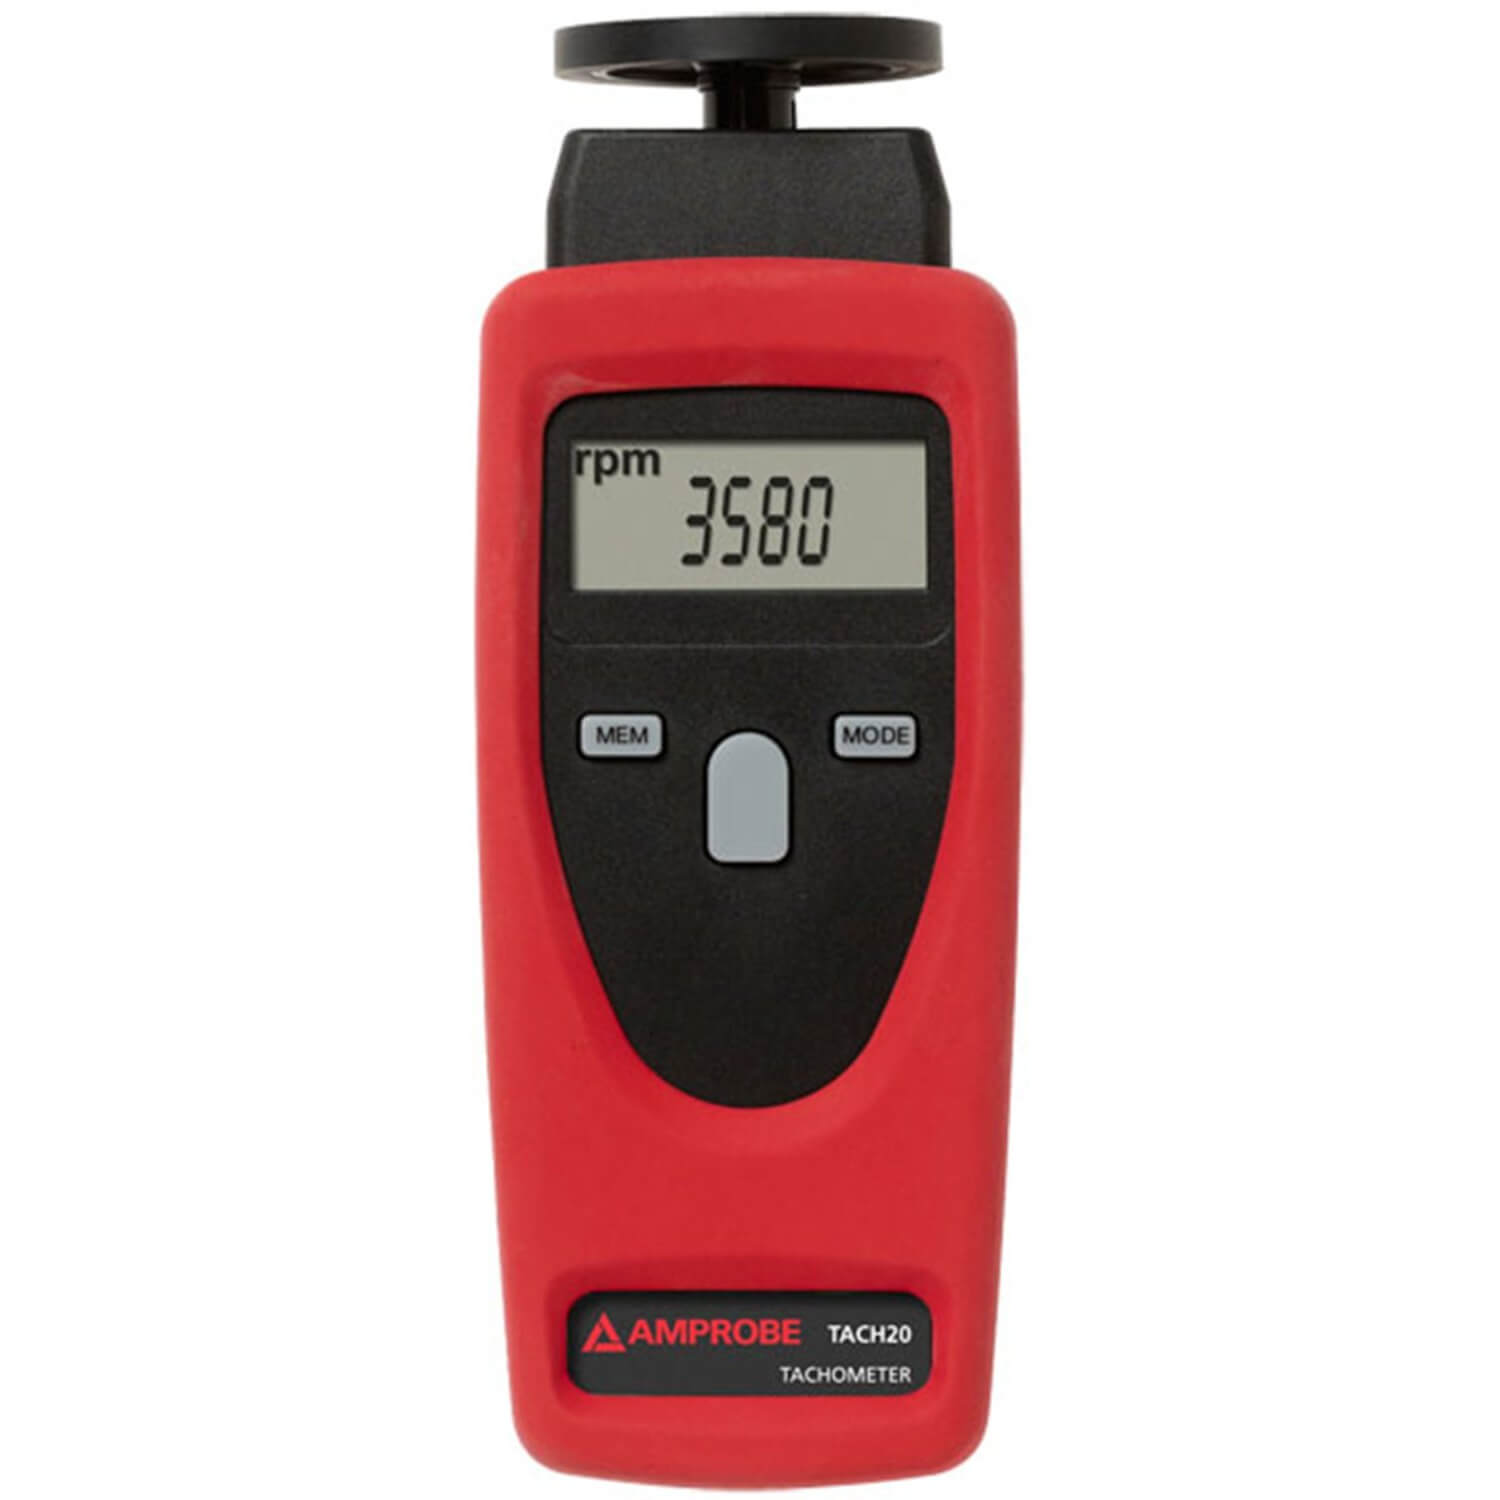 Amprobe TACH20 Contact and Non Contact Tachometer Handheld